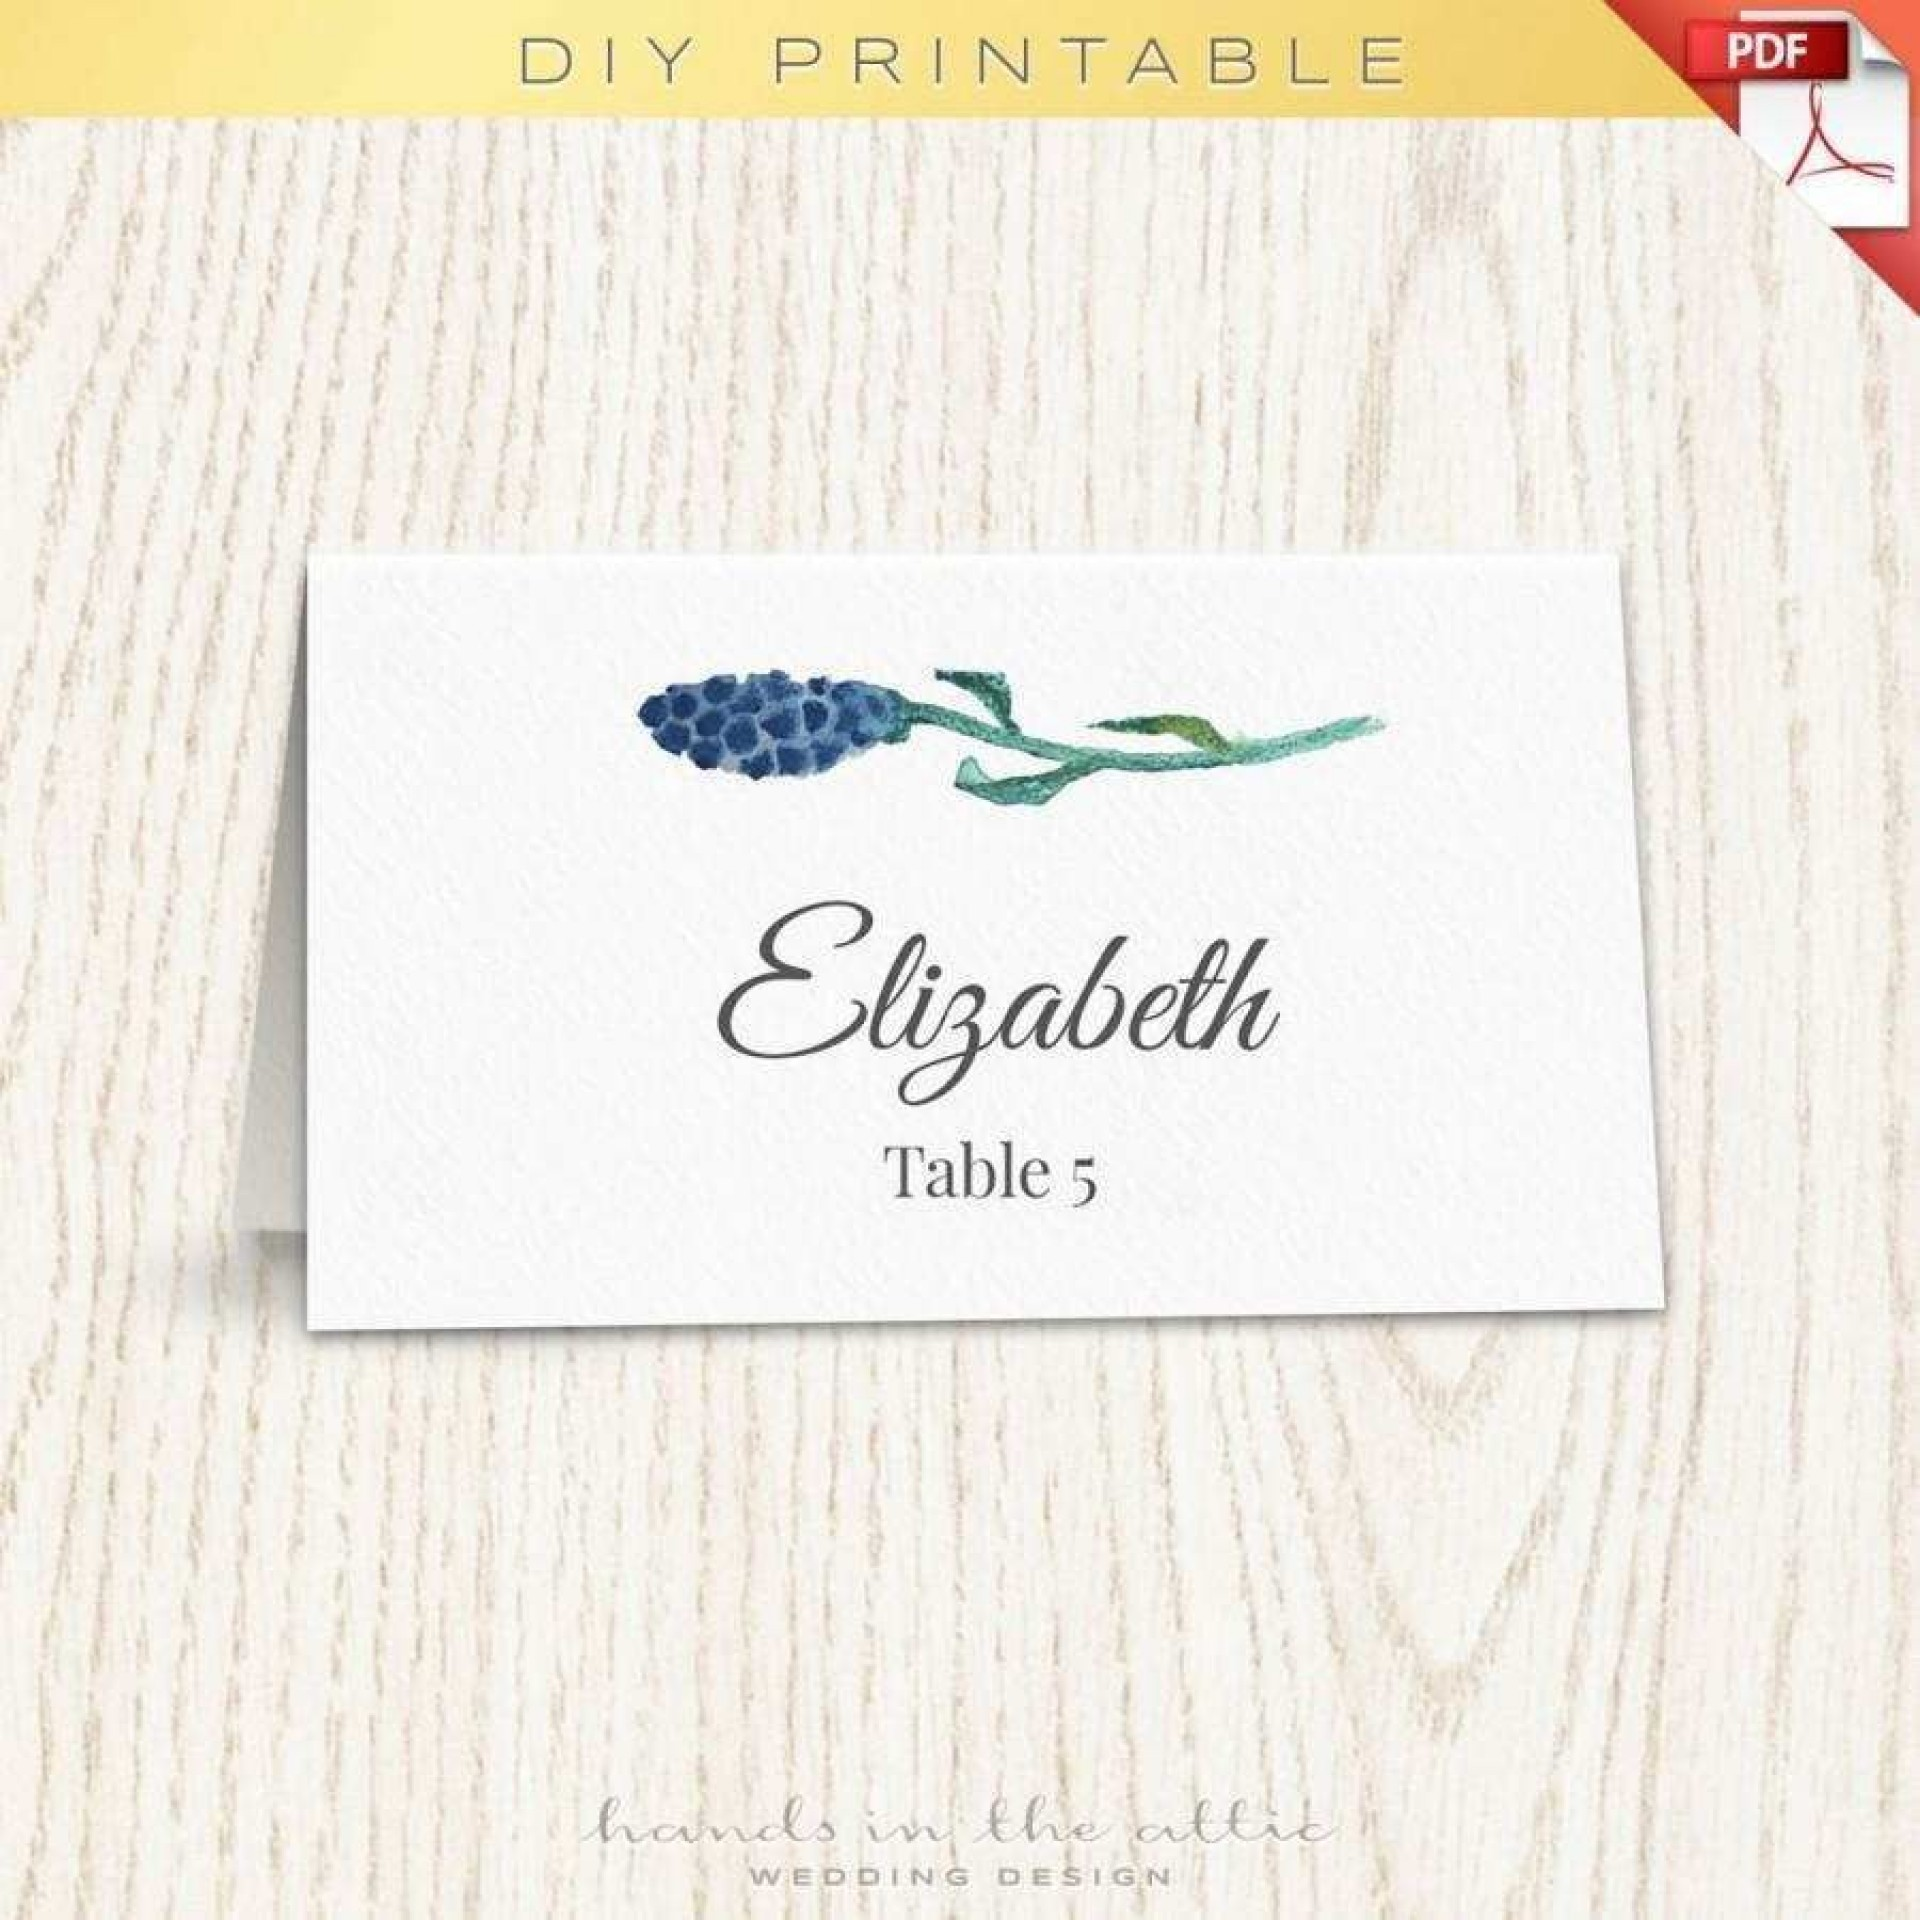 000 Incredible Wedding Name Card Template Concept  Free Download Design Sticker Format1920